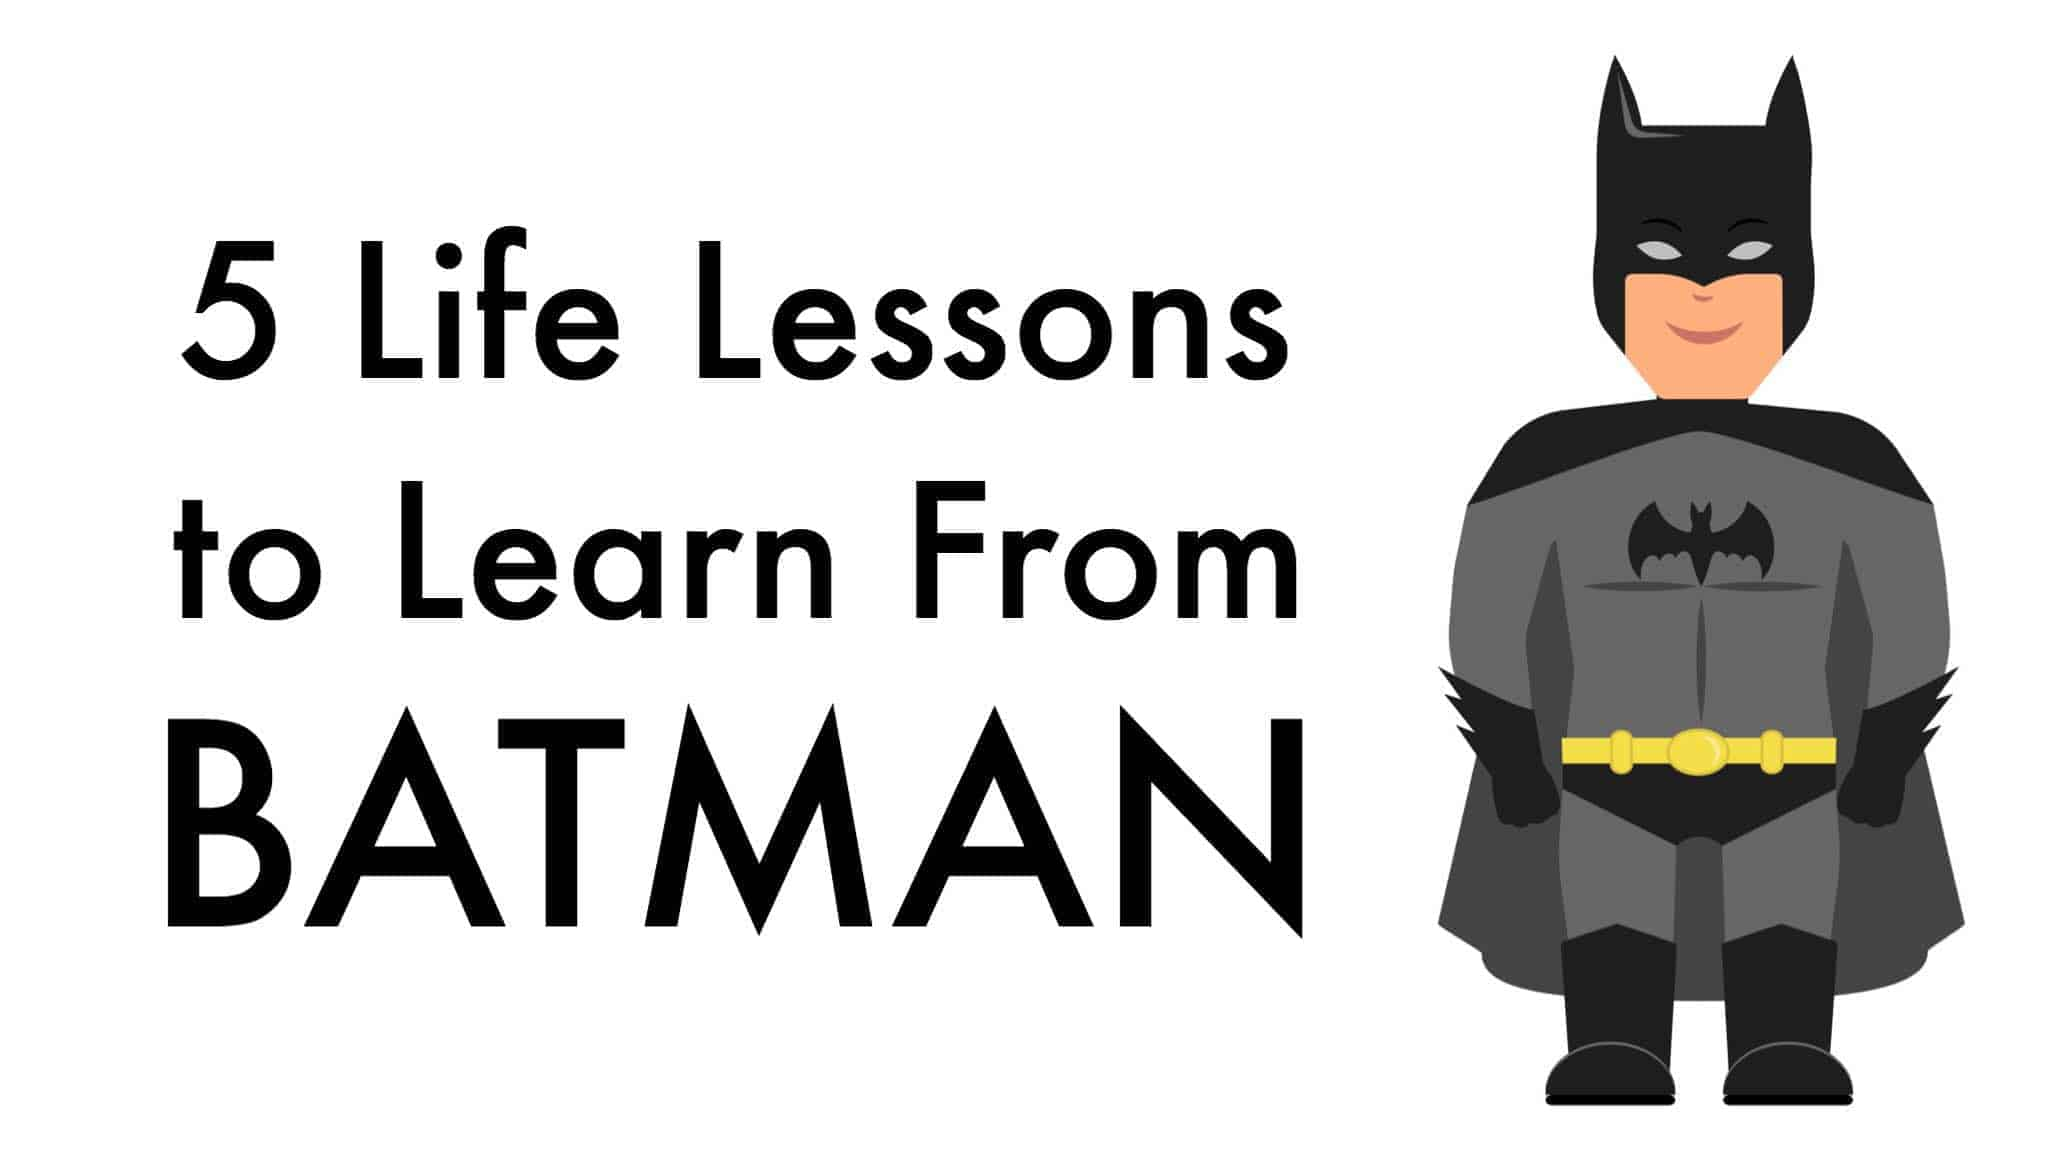 5 Life Lessons To Learn From Batman